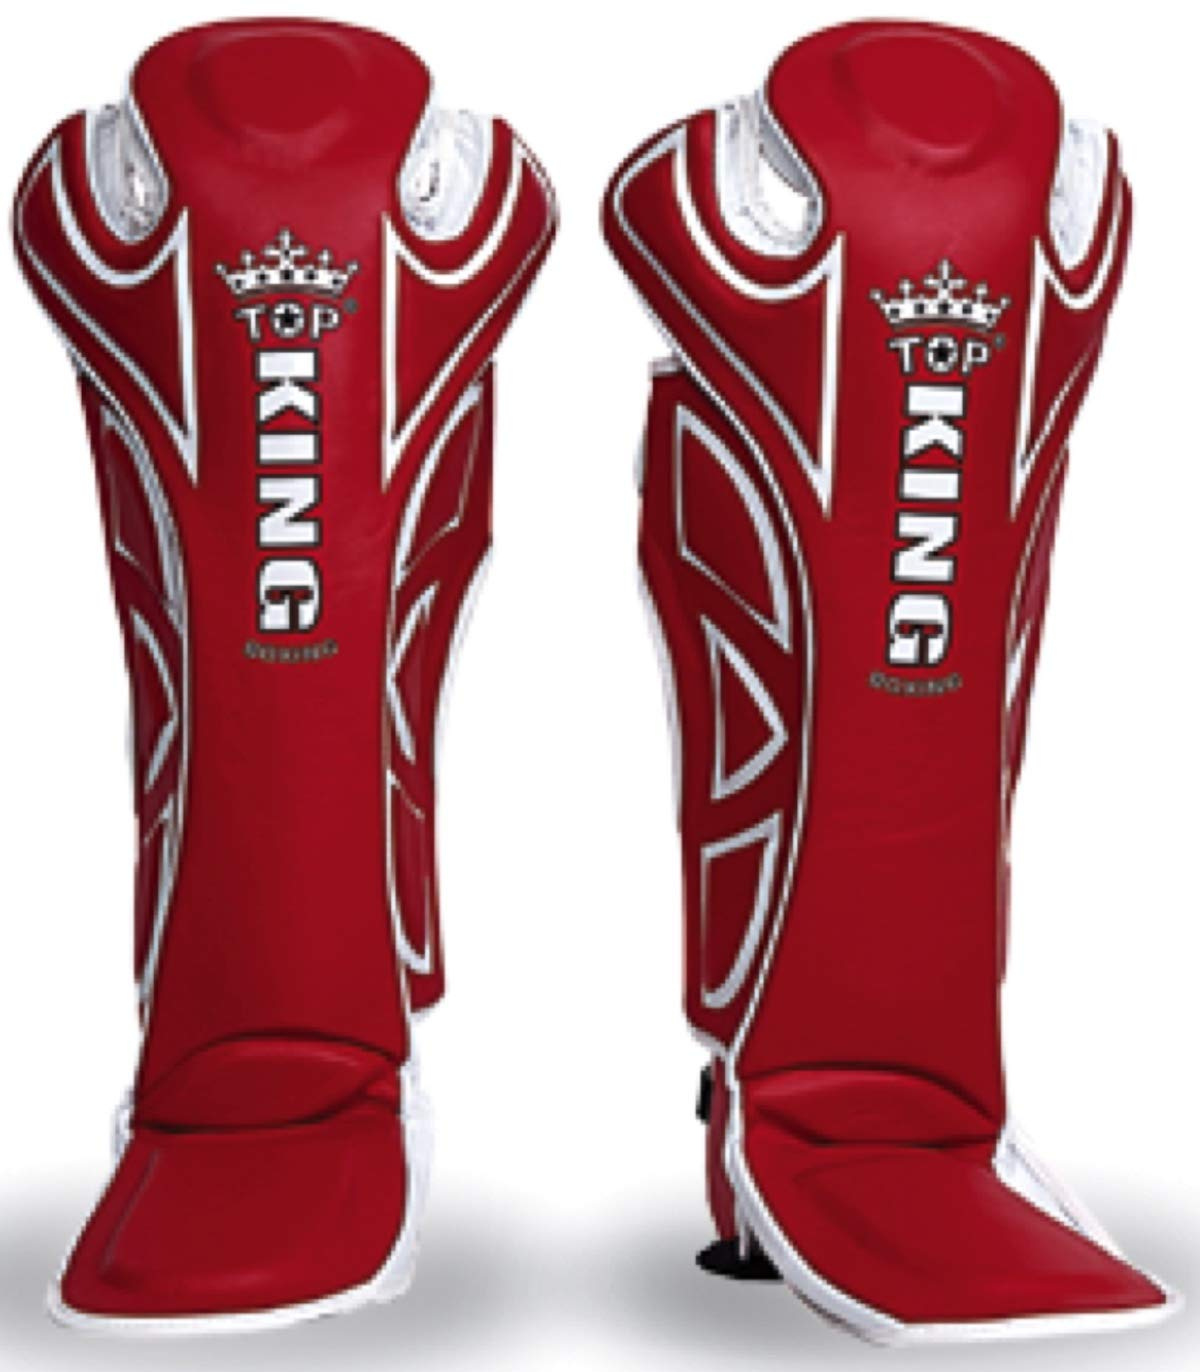 MMABLAST TOP King Professional Extreme SHIN Guards-Genuine Leather TKSGE-SL-RED